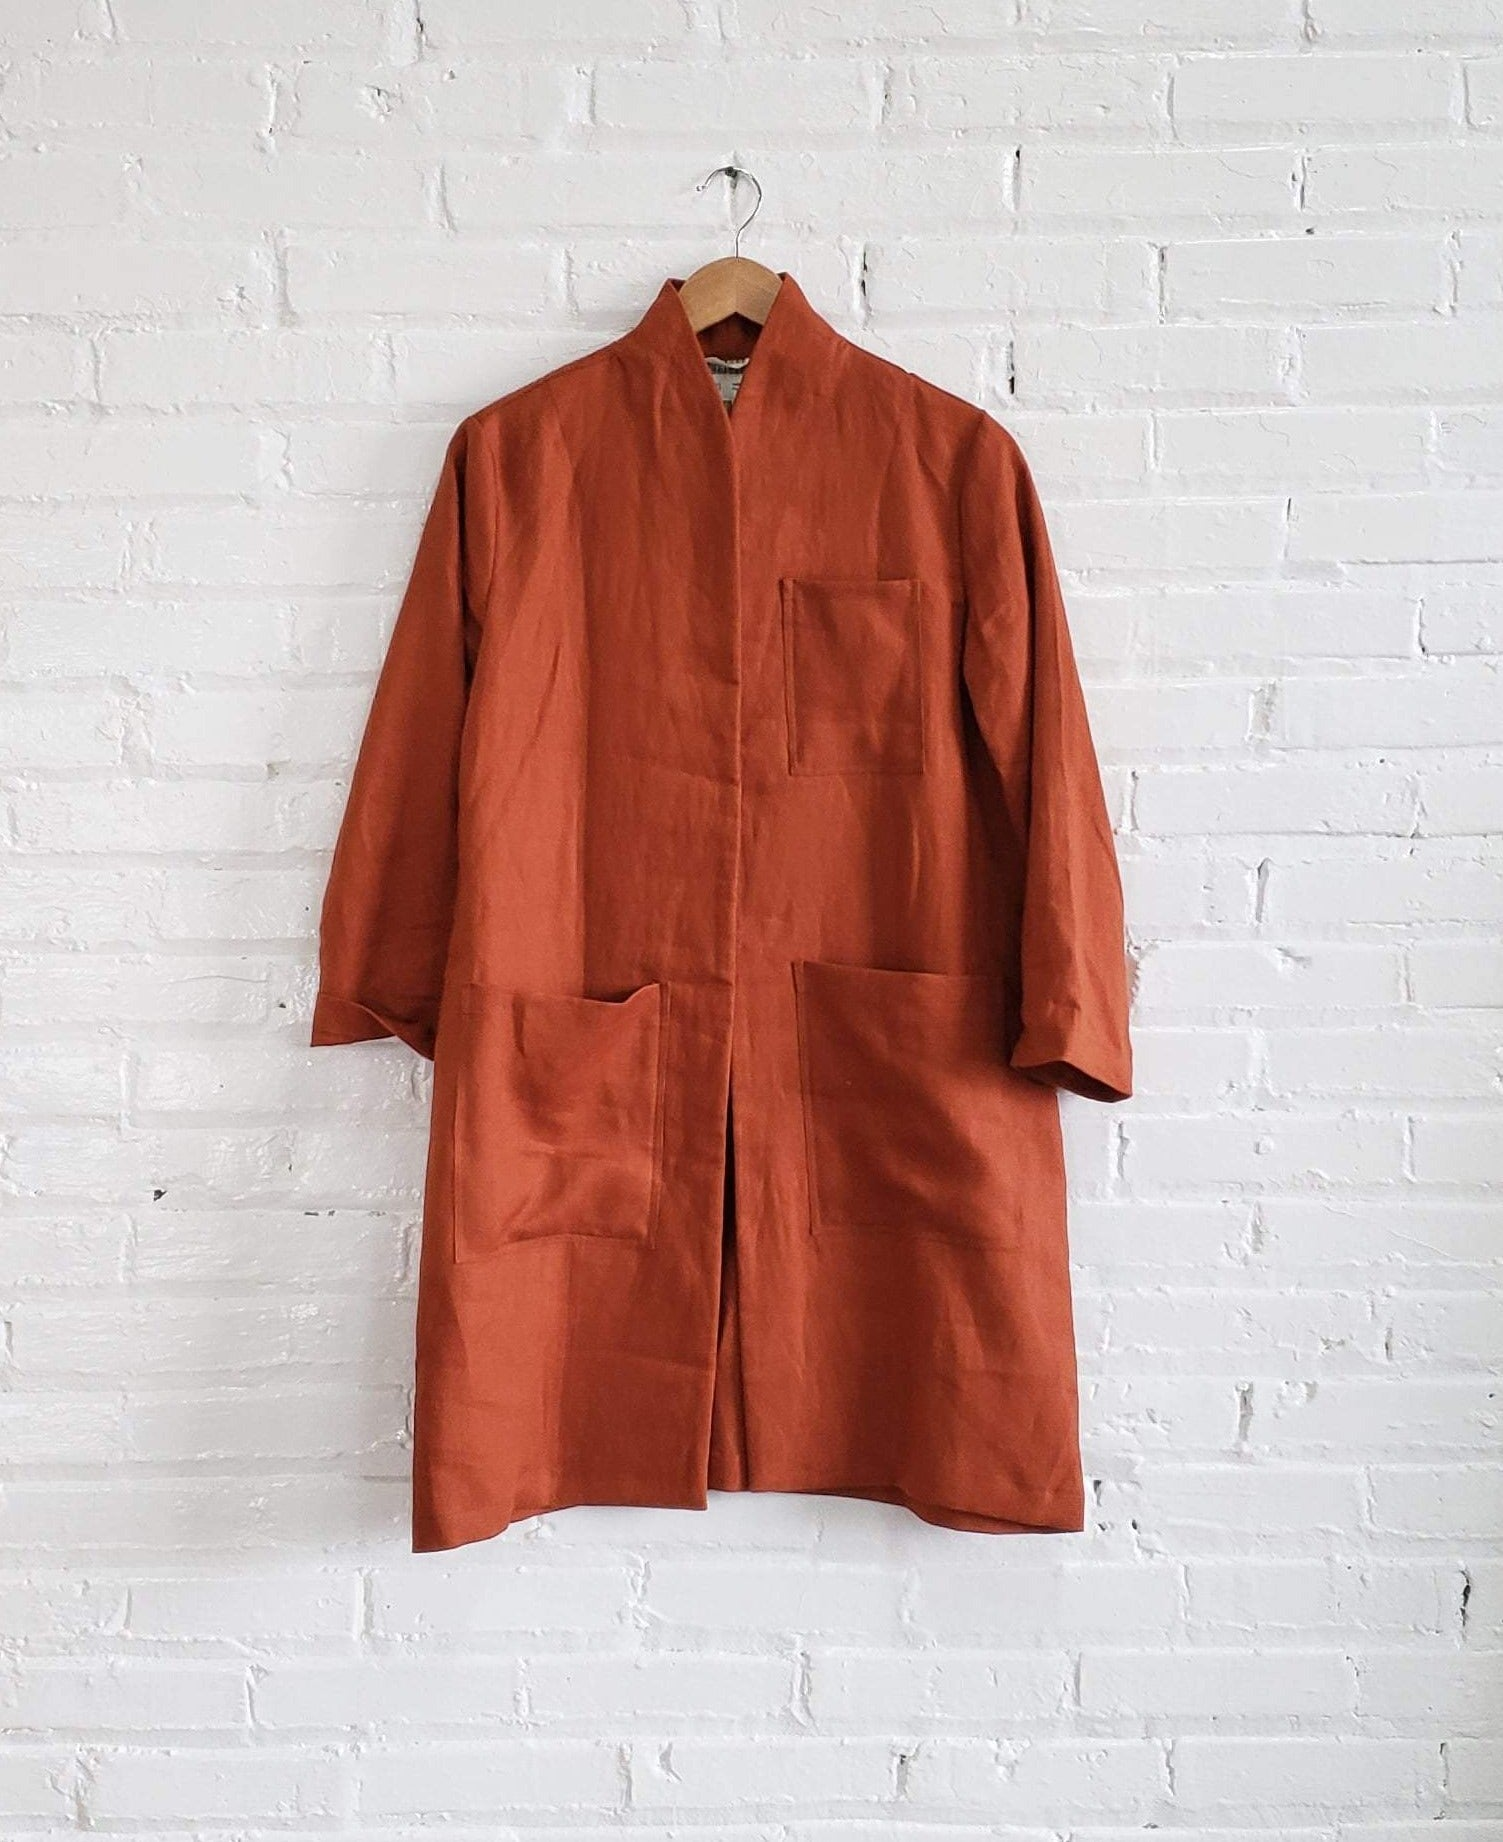 rust orange linen labcoat hanging on white brick wall